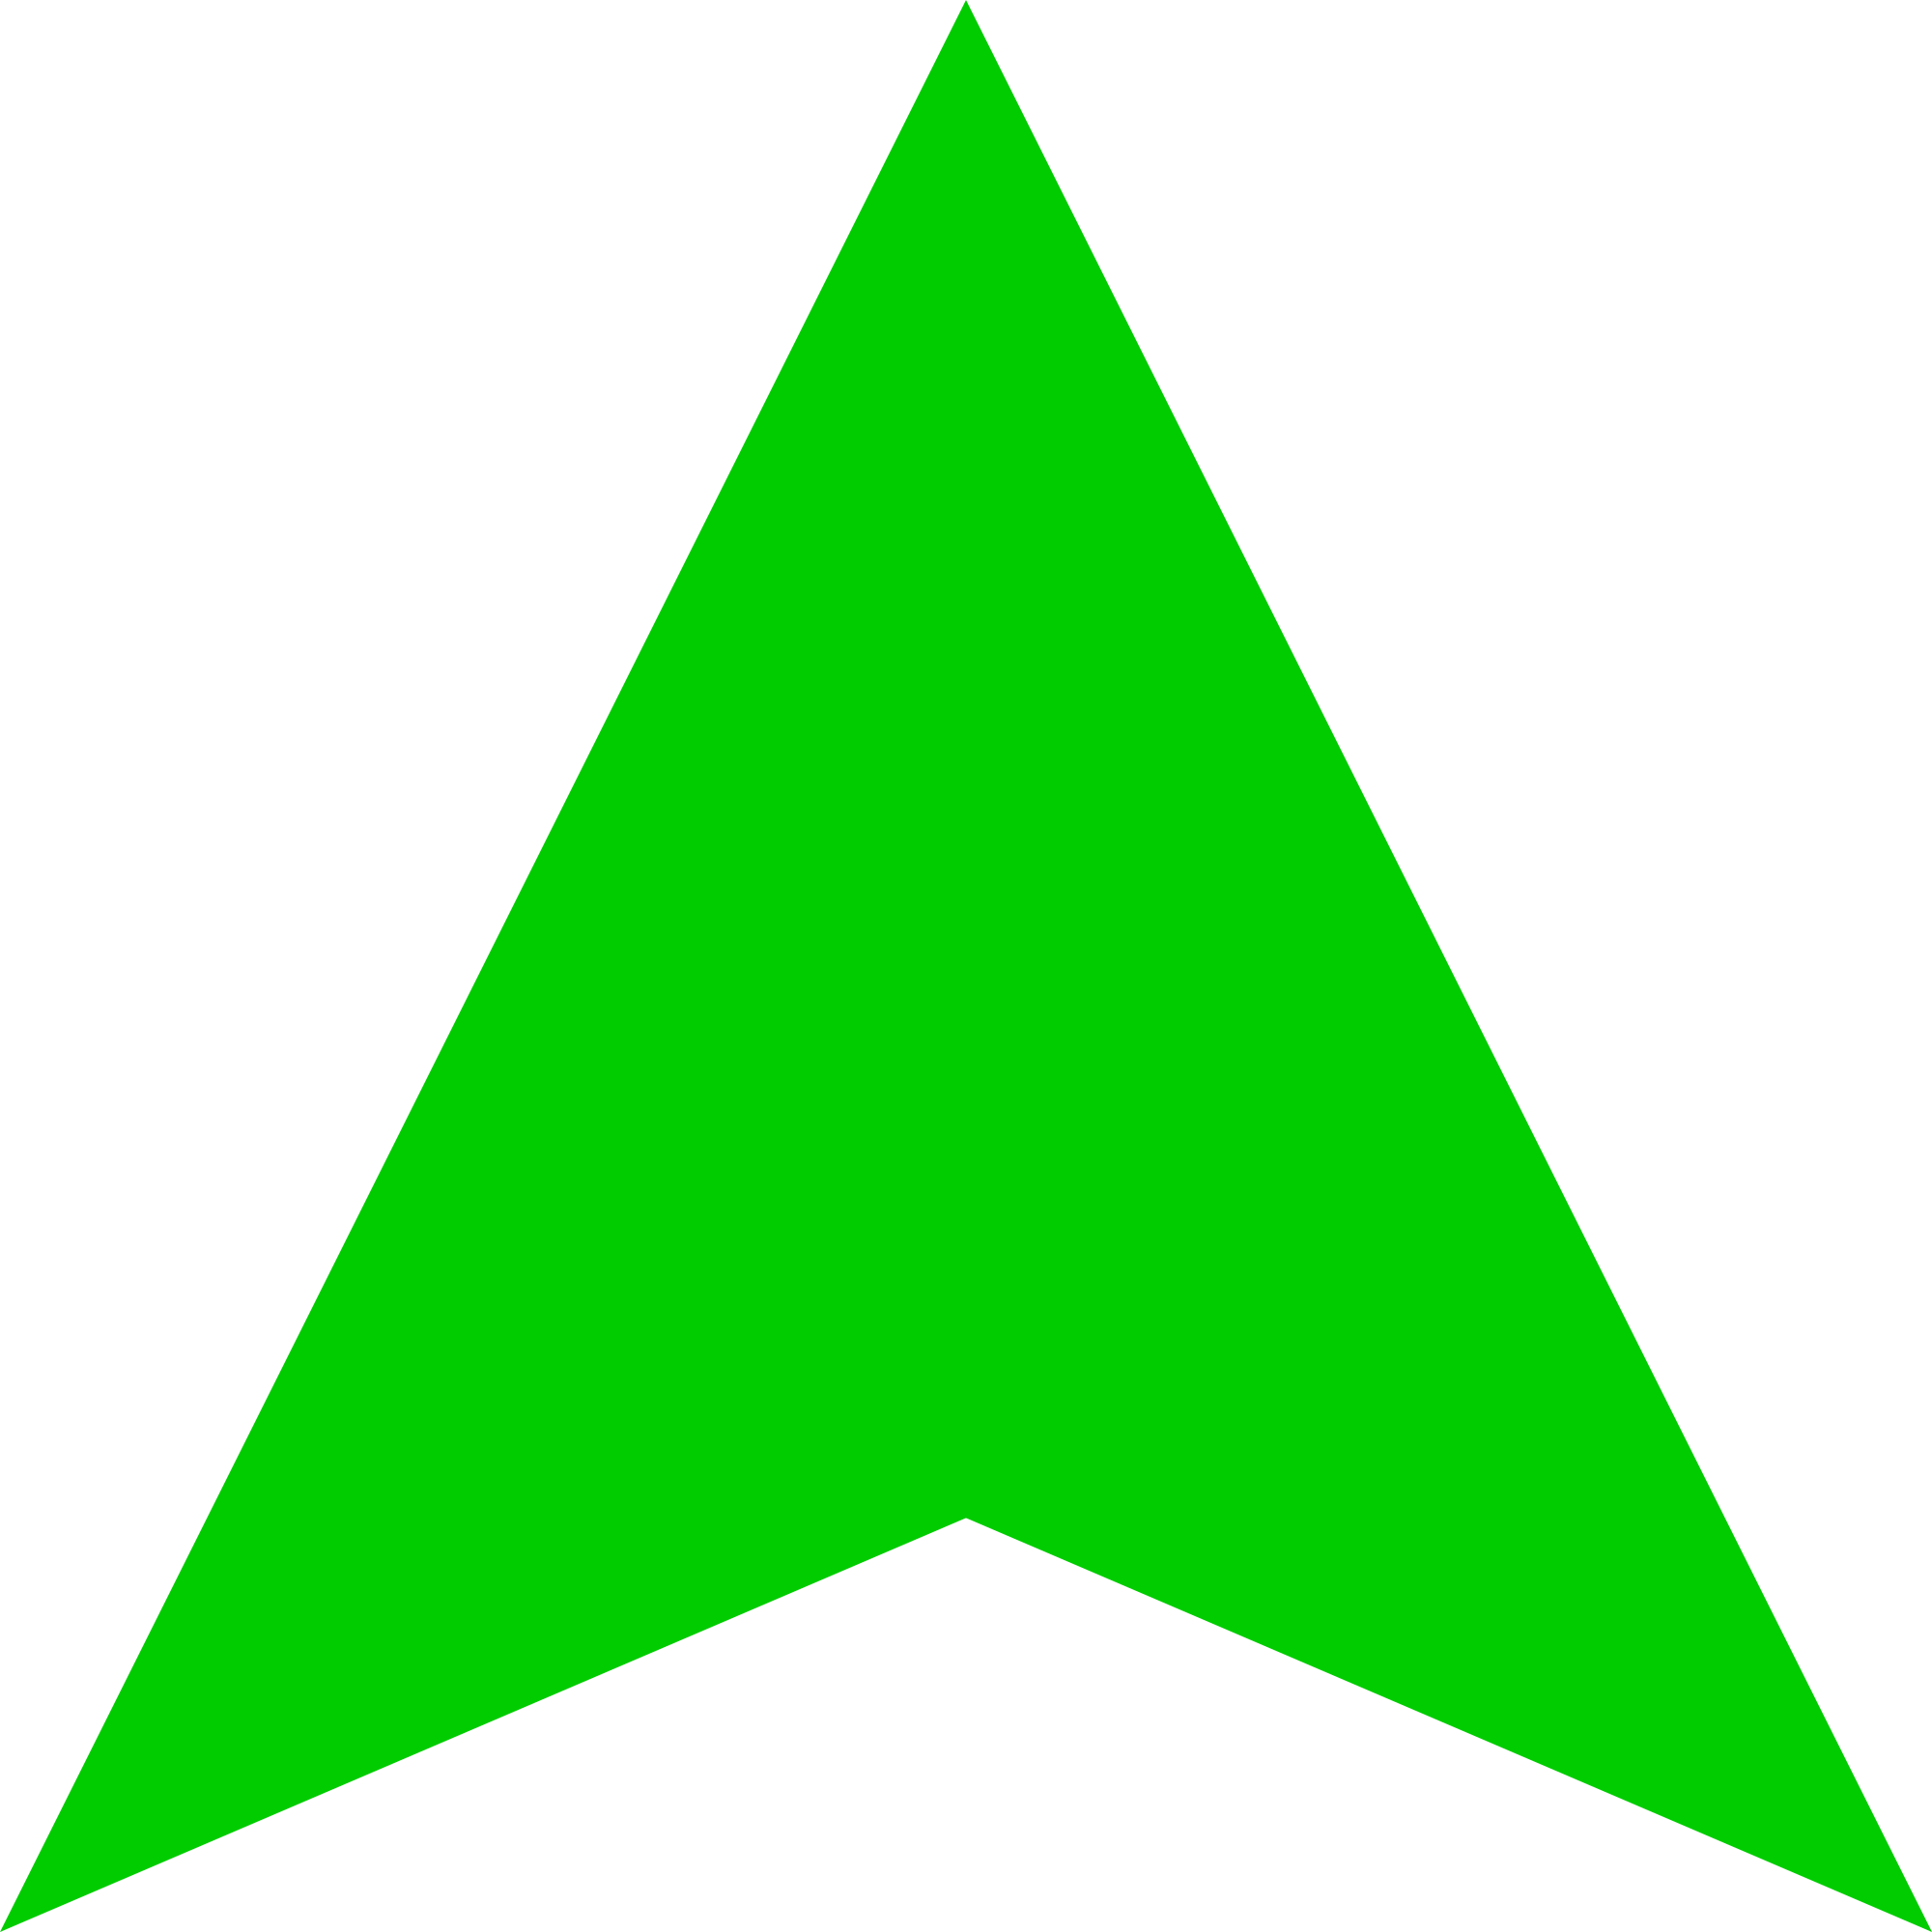 Green arrow icon png. File up darker svg